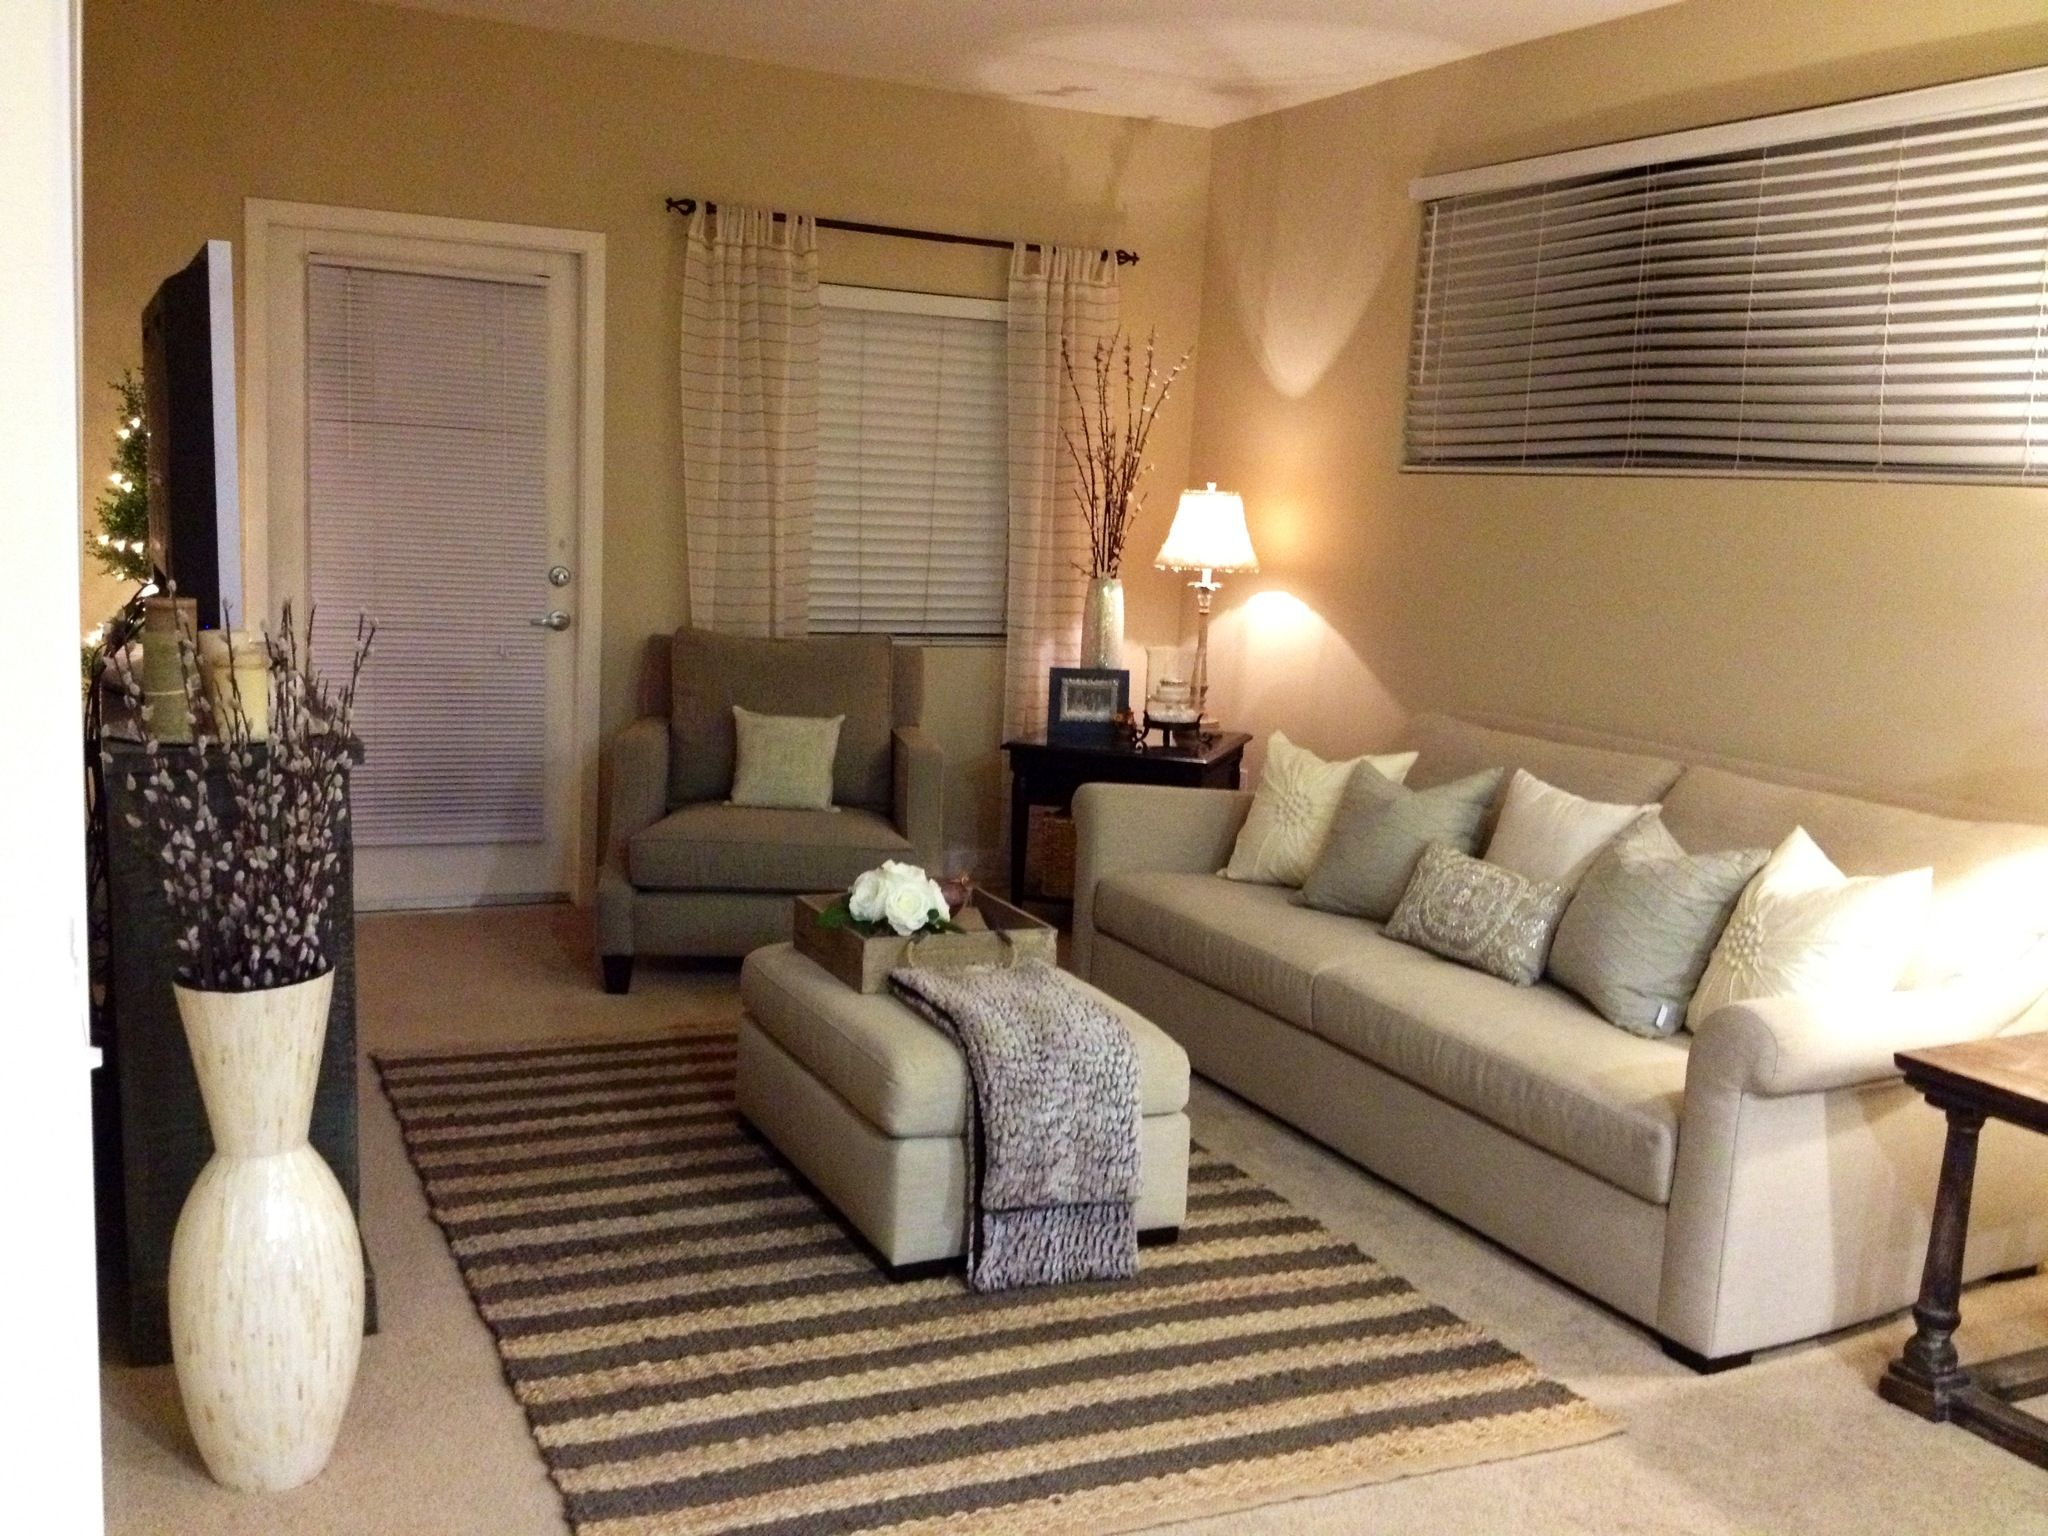 Living room, small living rooms, small spaces, decorating